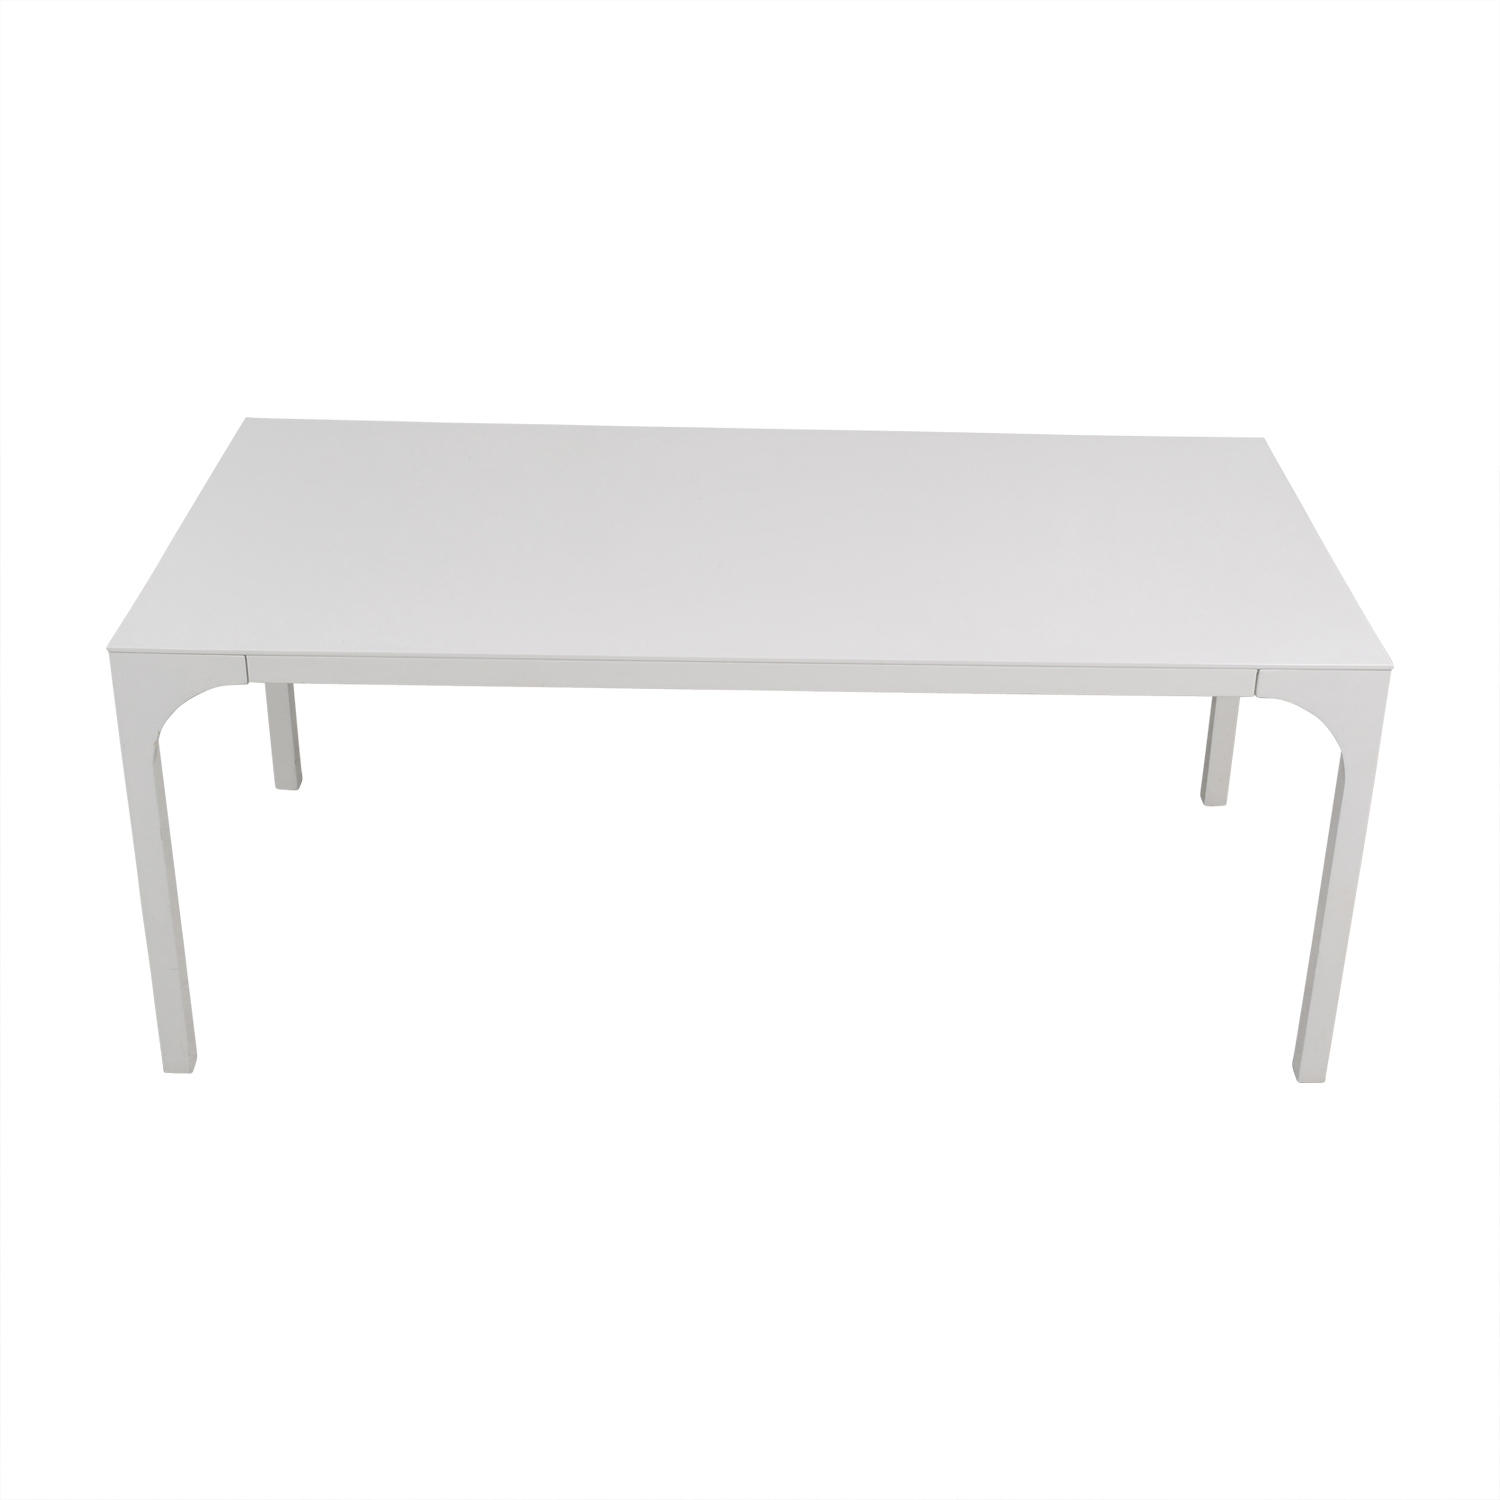 White Rectangular Table / Tables